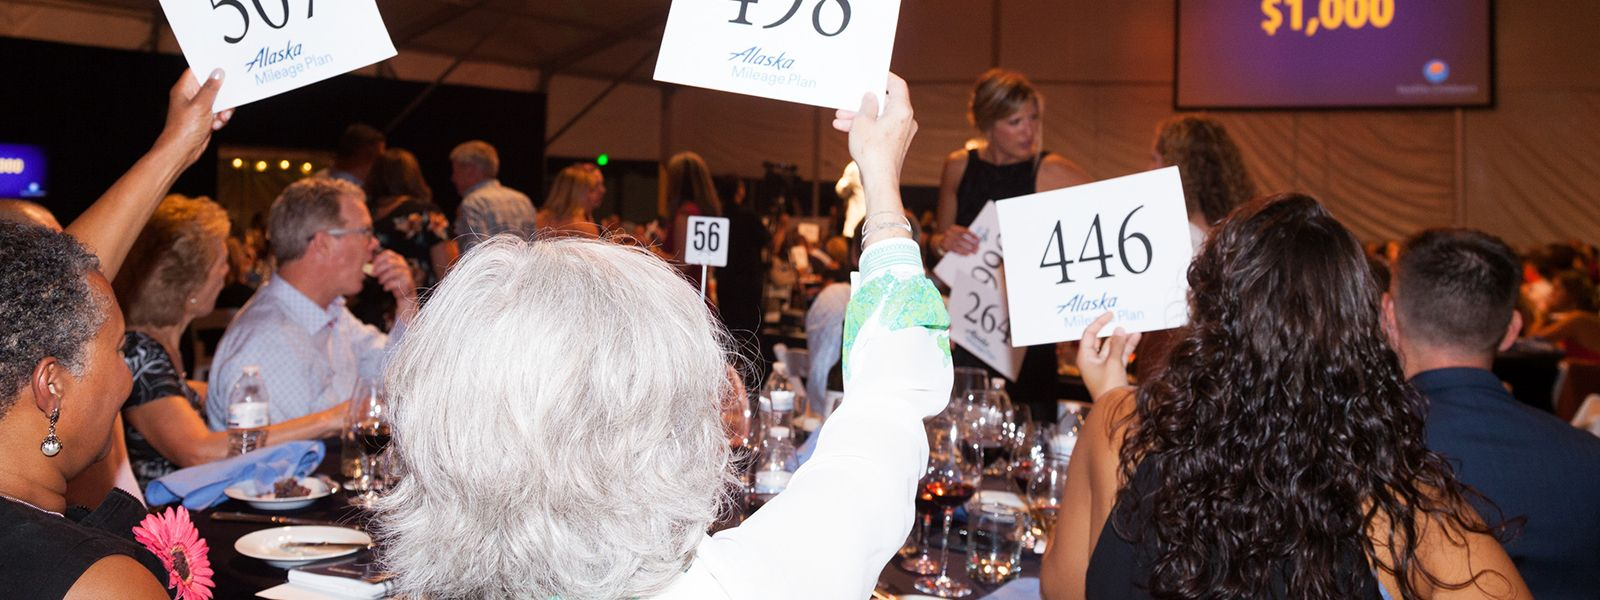 guests hold up bid numbers at a previous Auction of Washington wines gala.